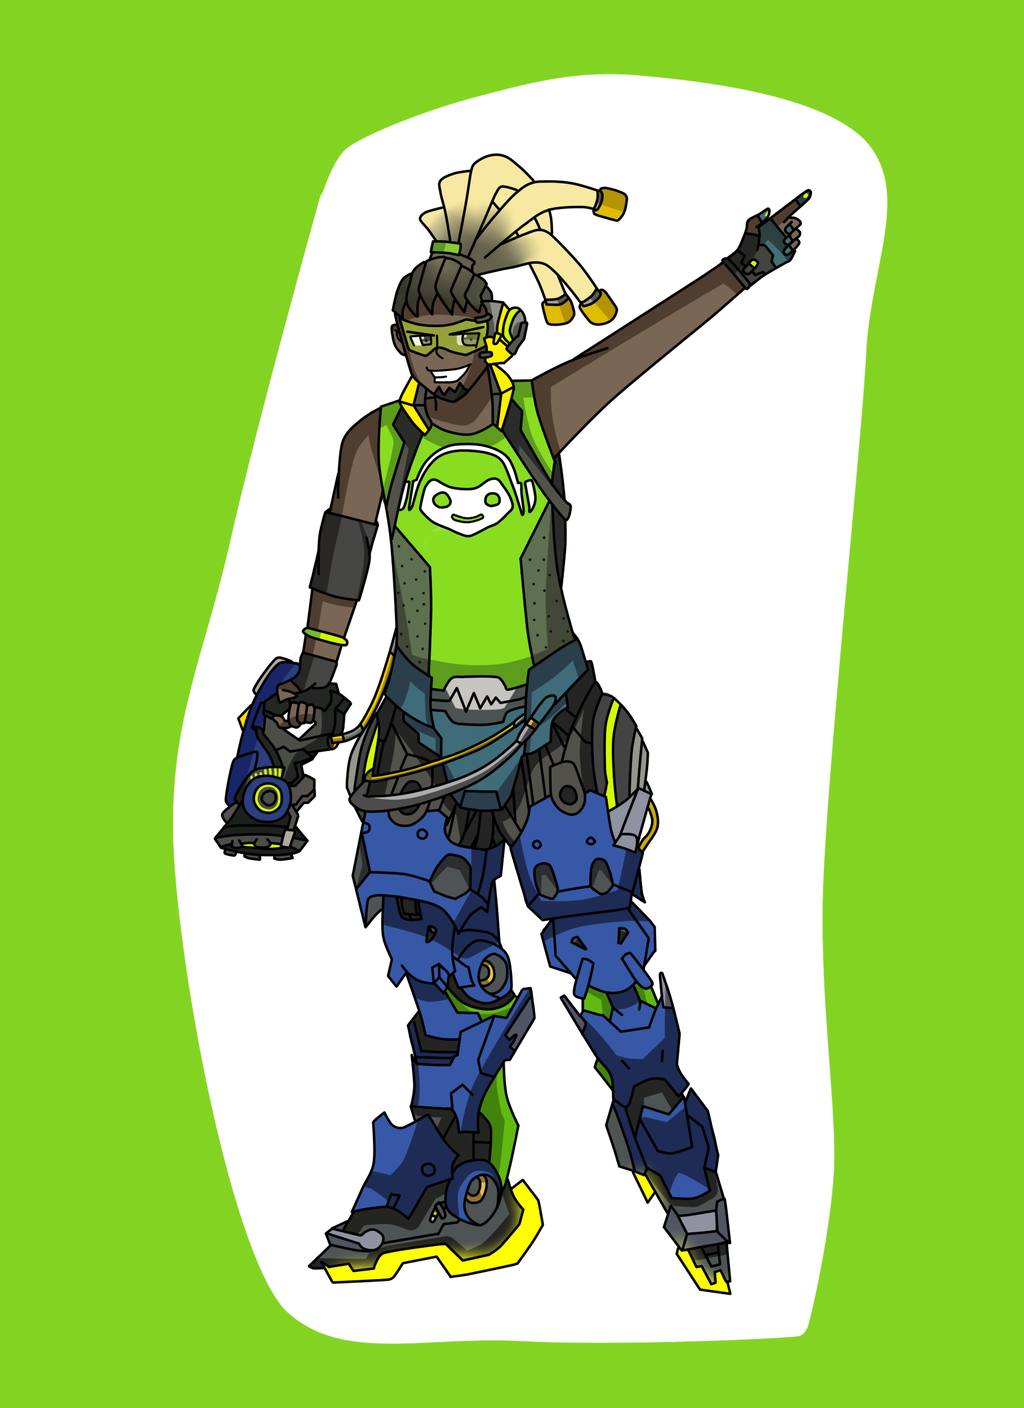 Overwatch lucio clipart image download Overwatch : Lucio by MarioK9 on DeviantArt image download